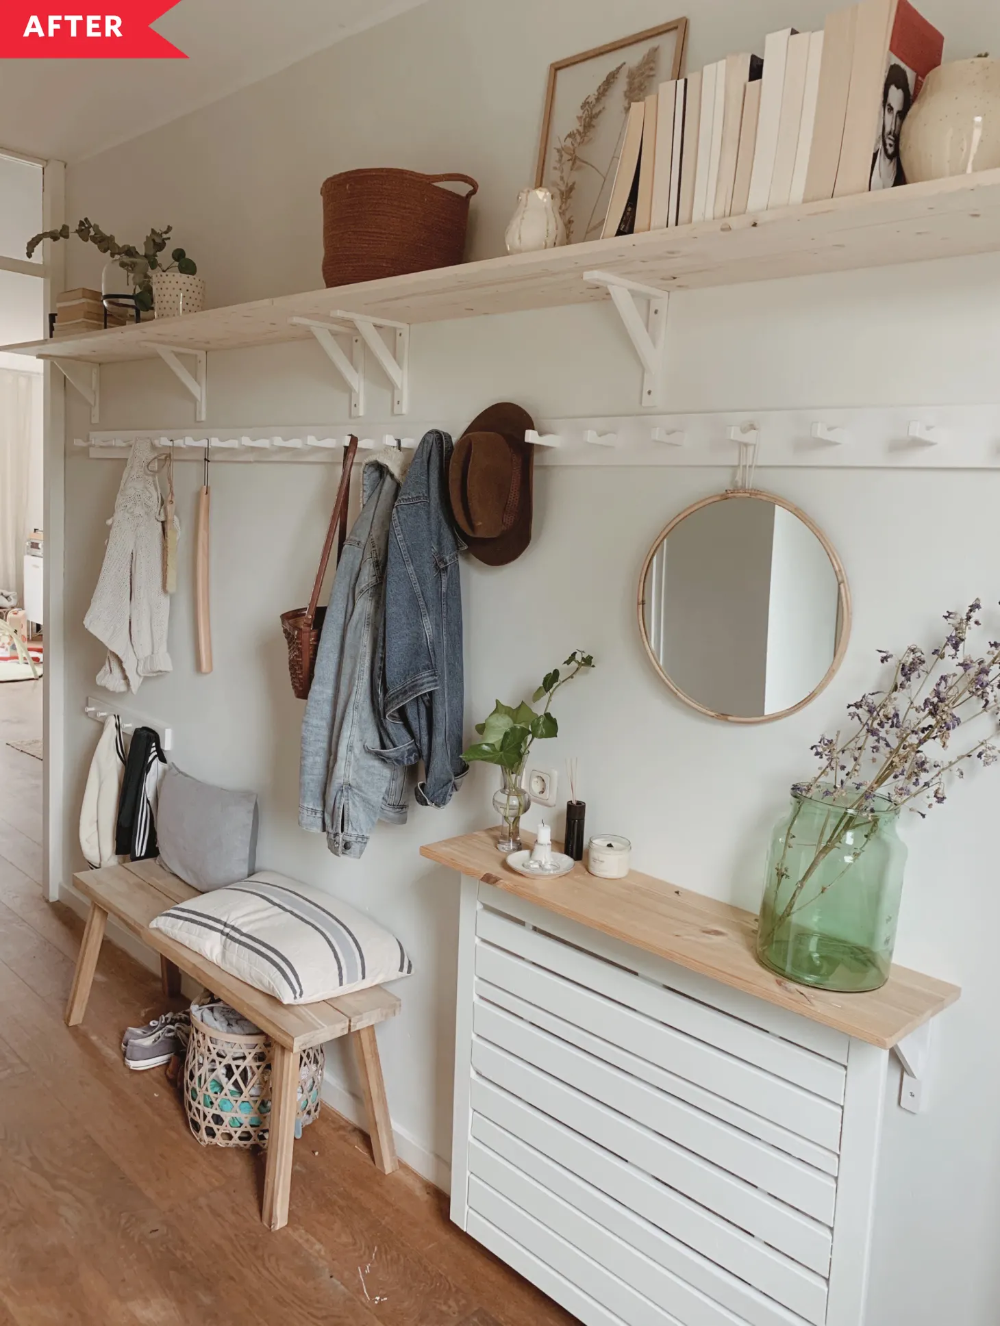 Before and After: A Weekend Project Totally Transforms a Narrow, Cluttered Entryway